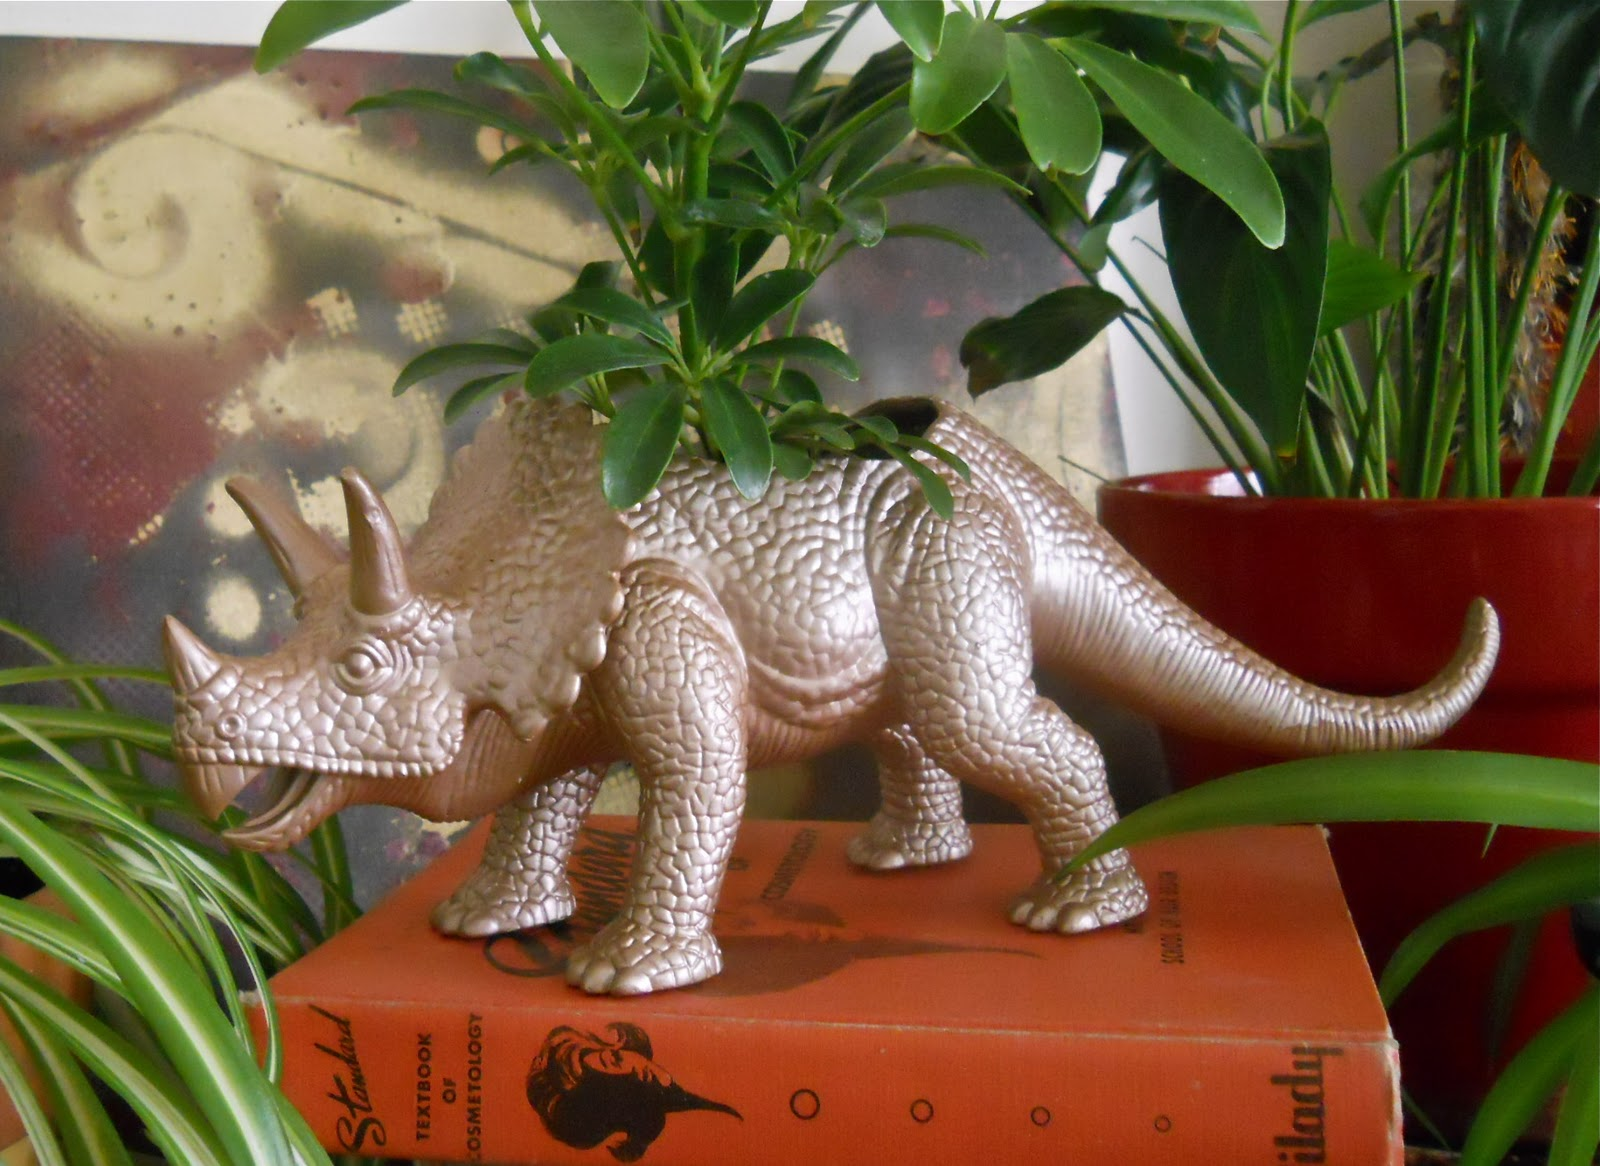 DIY Dinosaur Toy Small Plant Planter